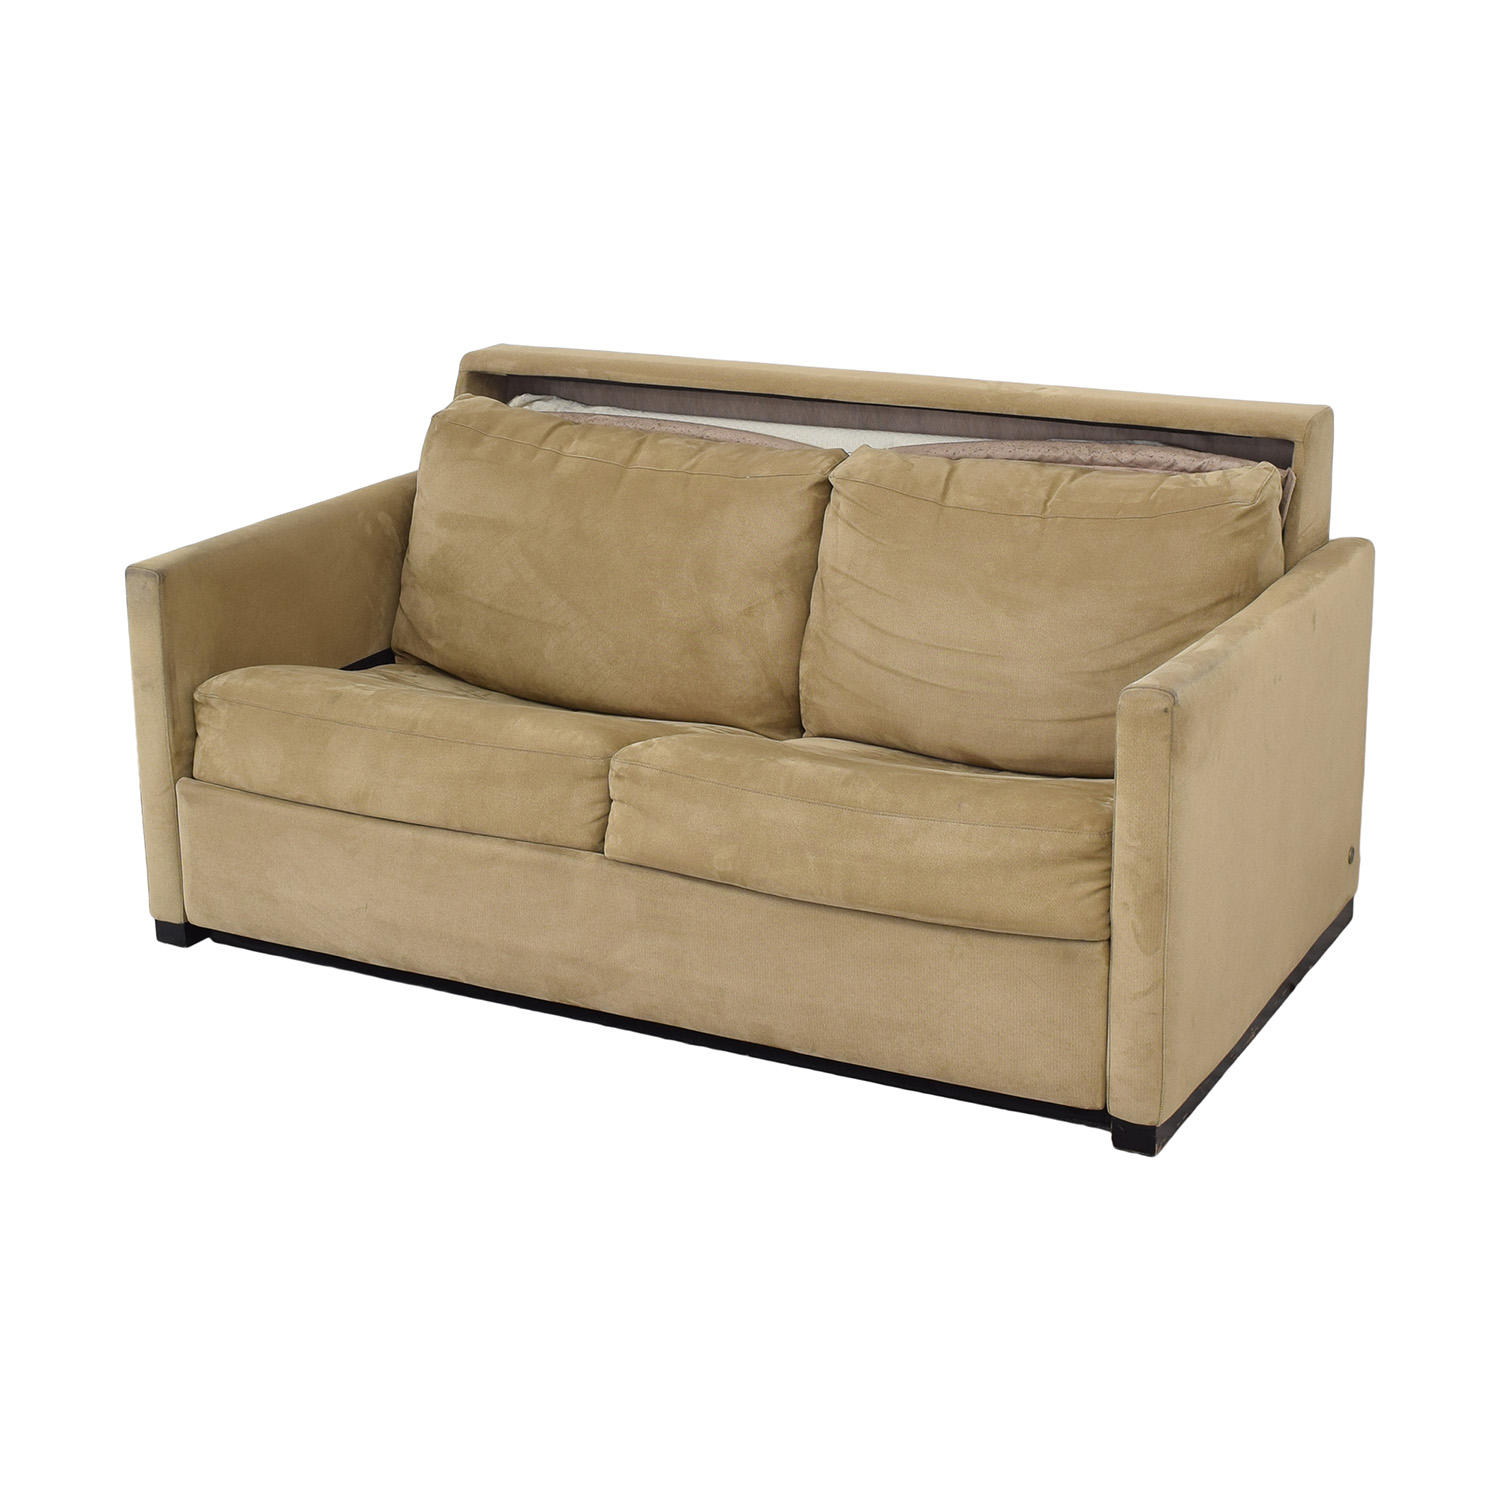 buy American Leather Patterson Sleeper Sofa with Ottoman American Leather Sofa Beds